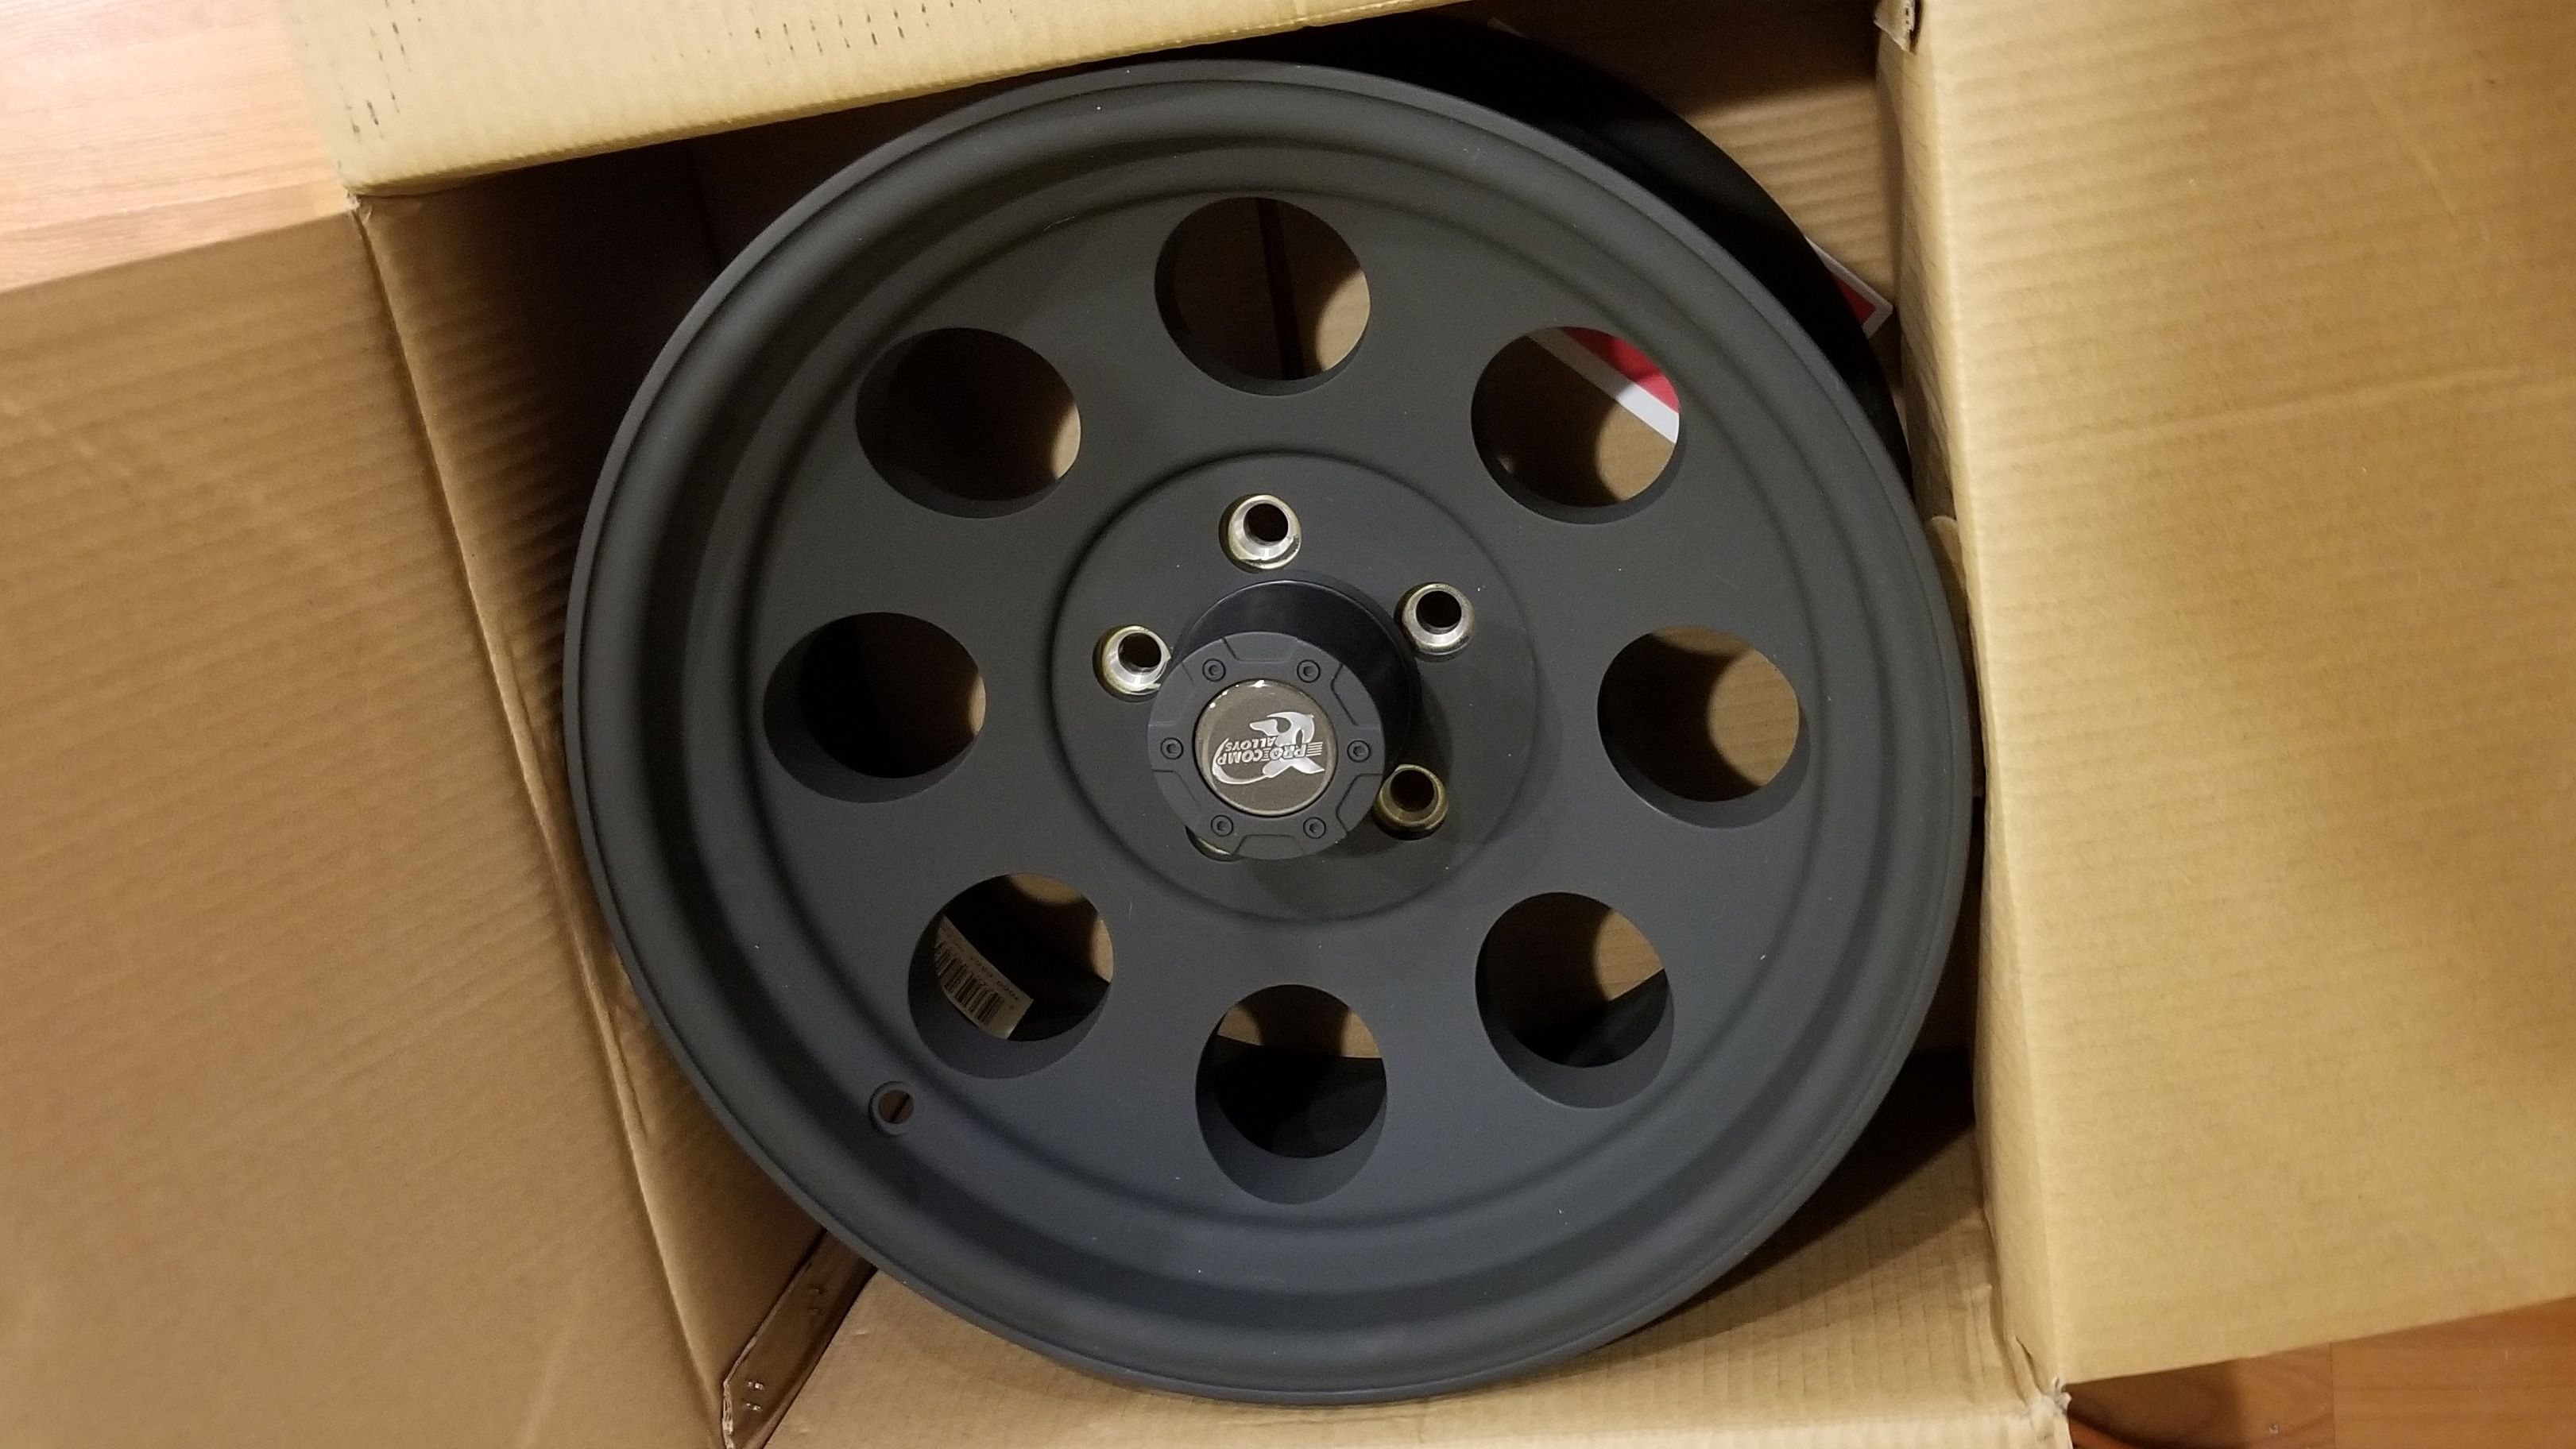 This Week I Received My Pro Comp Series 7069 16x8 Wheel With 5 On 4 5 Bolt Pattern Flat Black Machined 7069 6 Bolt Pattern Jeep Patriot Sport Jeep Patriot